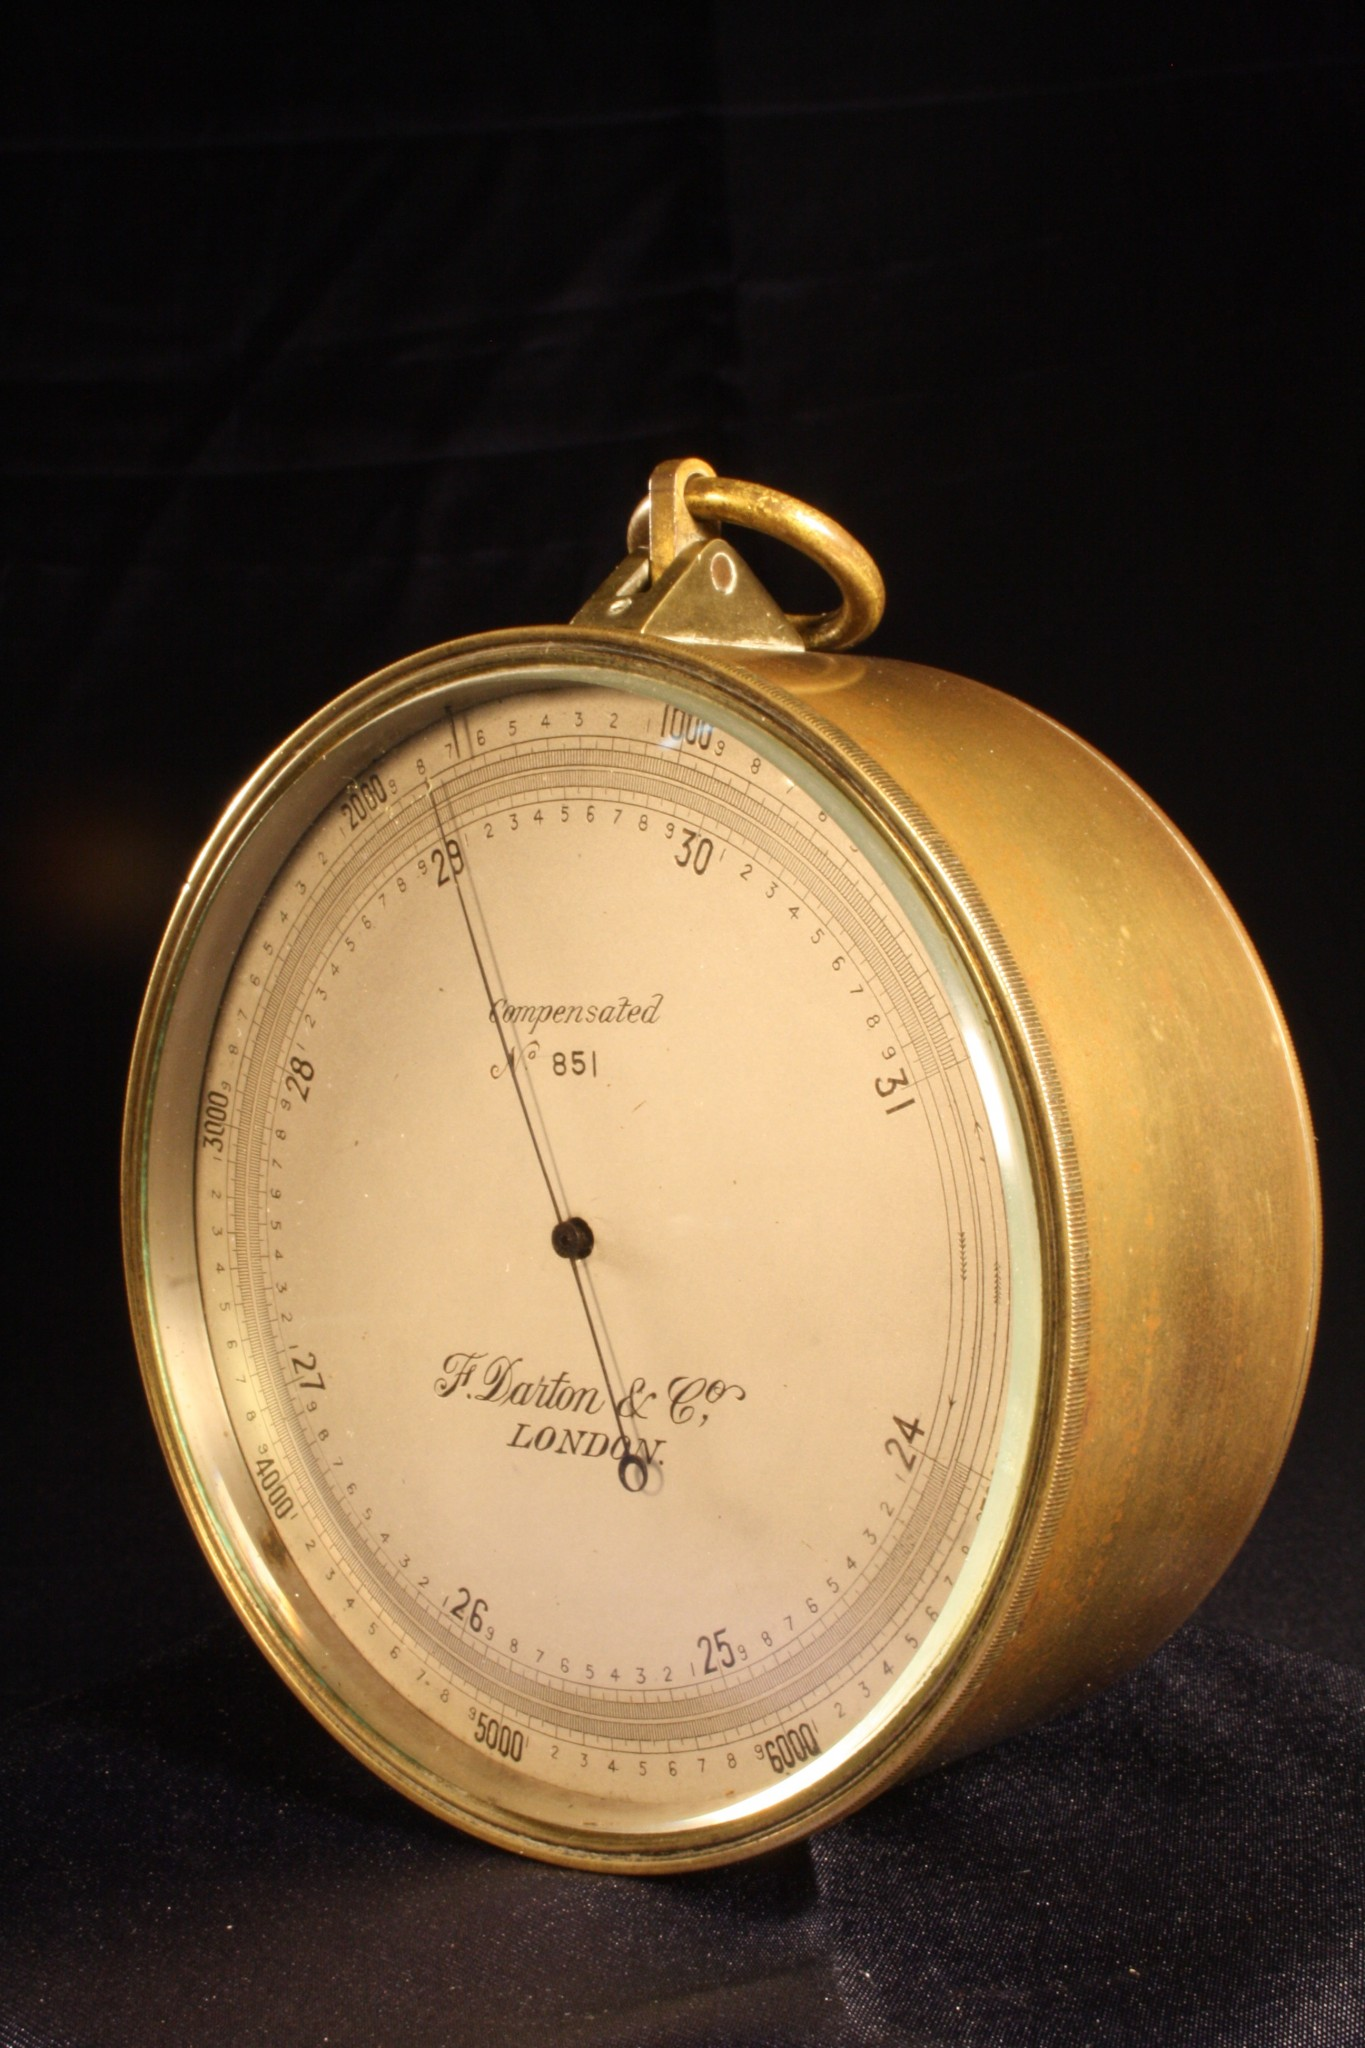 Image of Barometer Altimeter by Darton